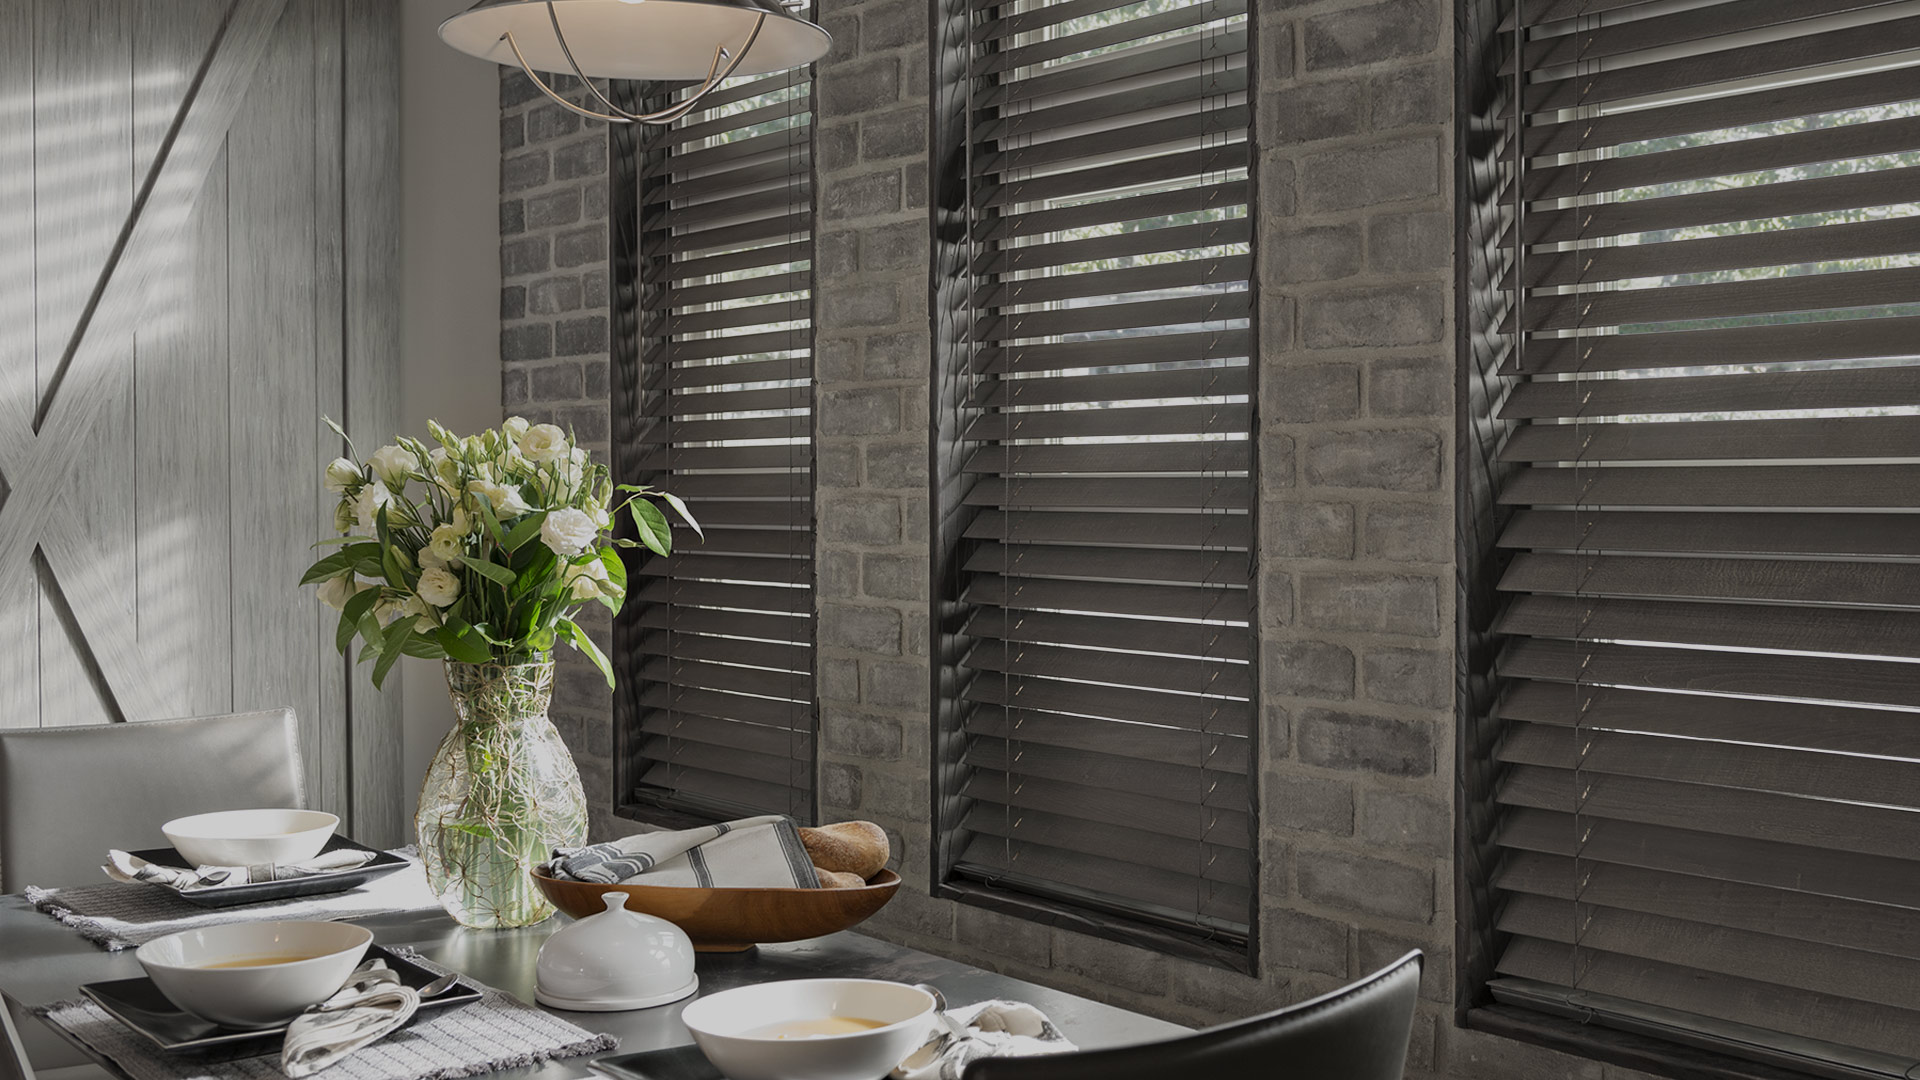 Kitchen with Wood Blinds